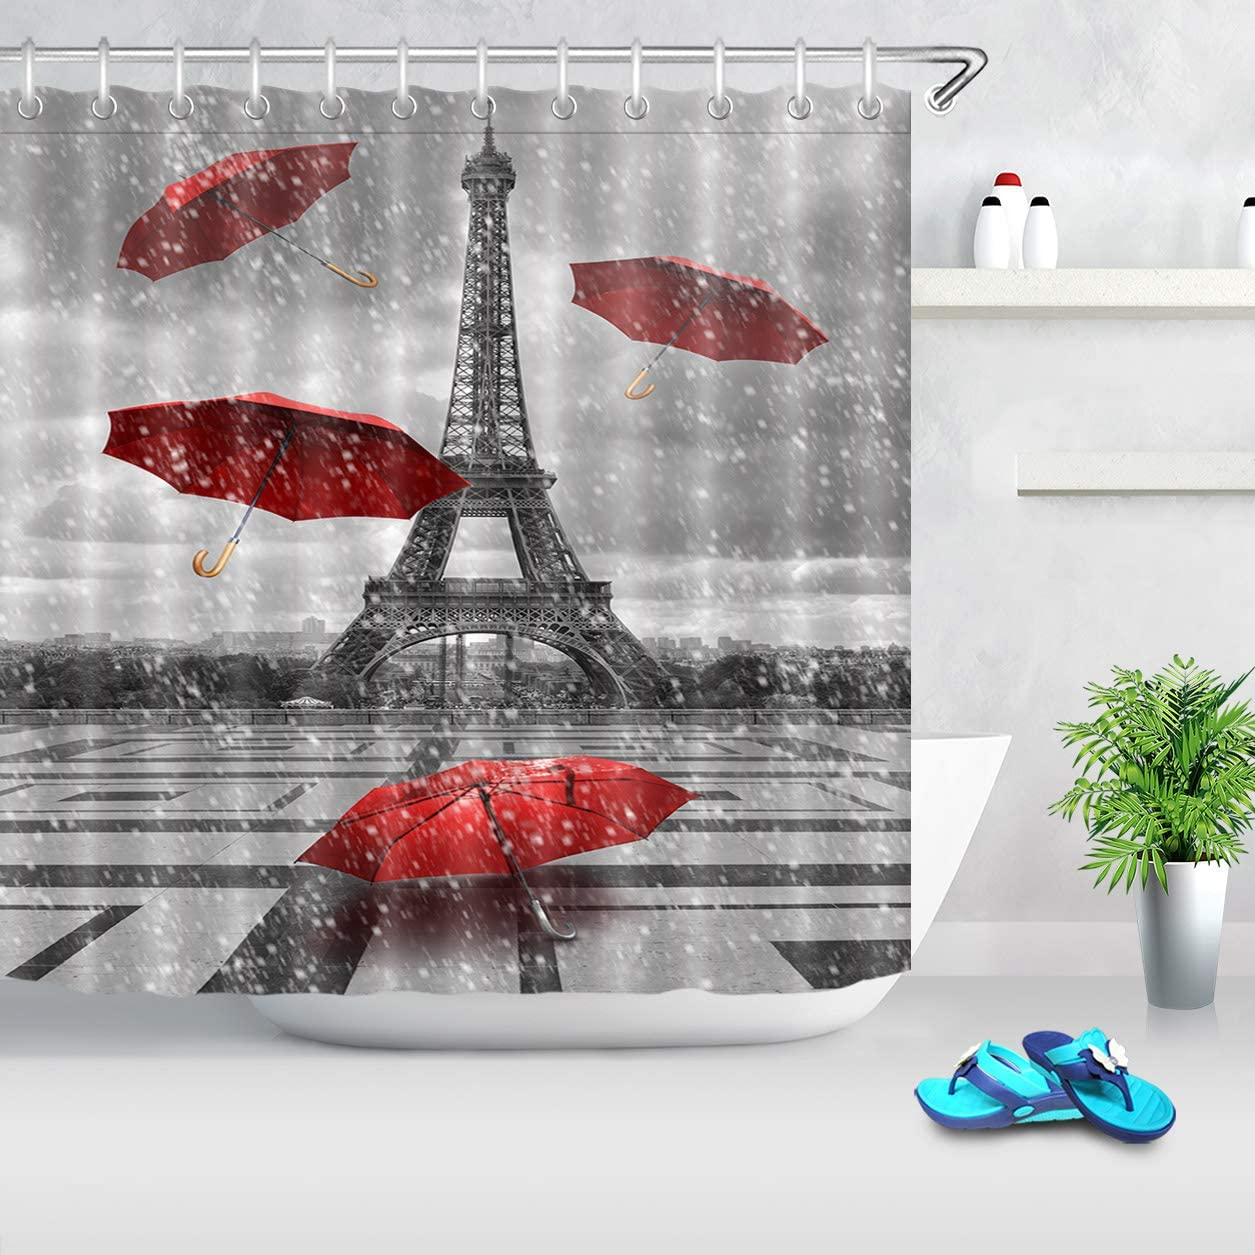 LB Paris Shower Curtain Vintage Raining France Eiffel Tower with Red Umbrella Shower Curtain Waterproof Fabric Bathroom Decor with Hooks,72 x 72 Inch